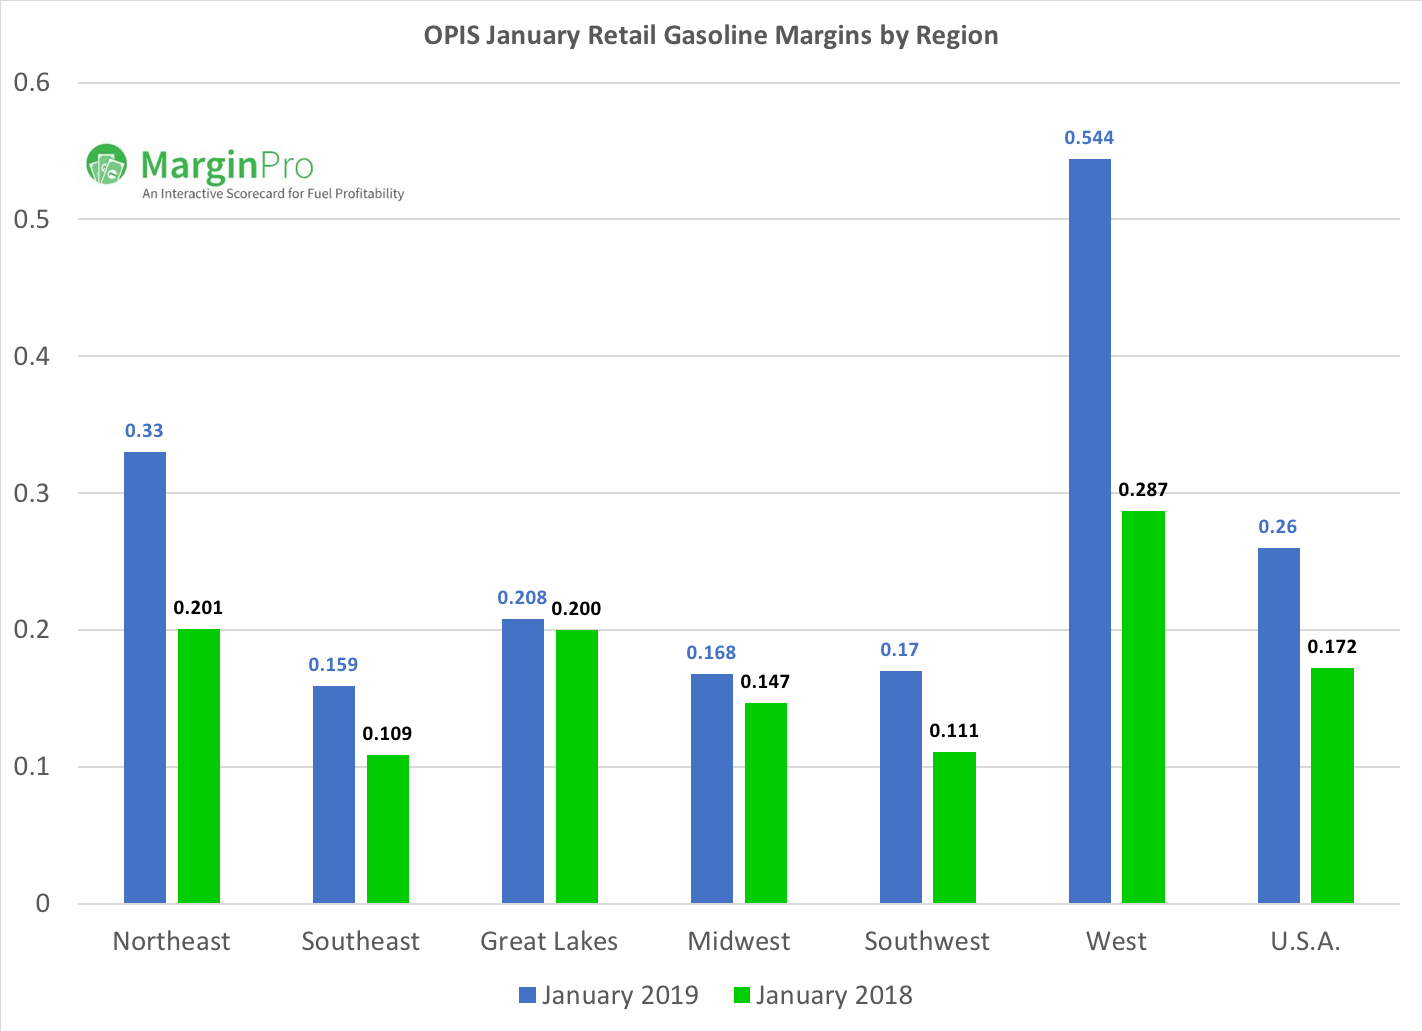 January 2019 Regional Gasoline Profits